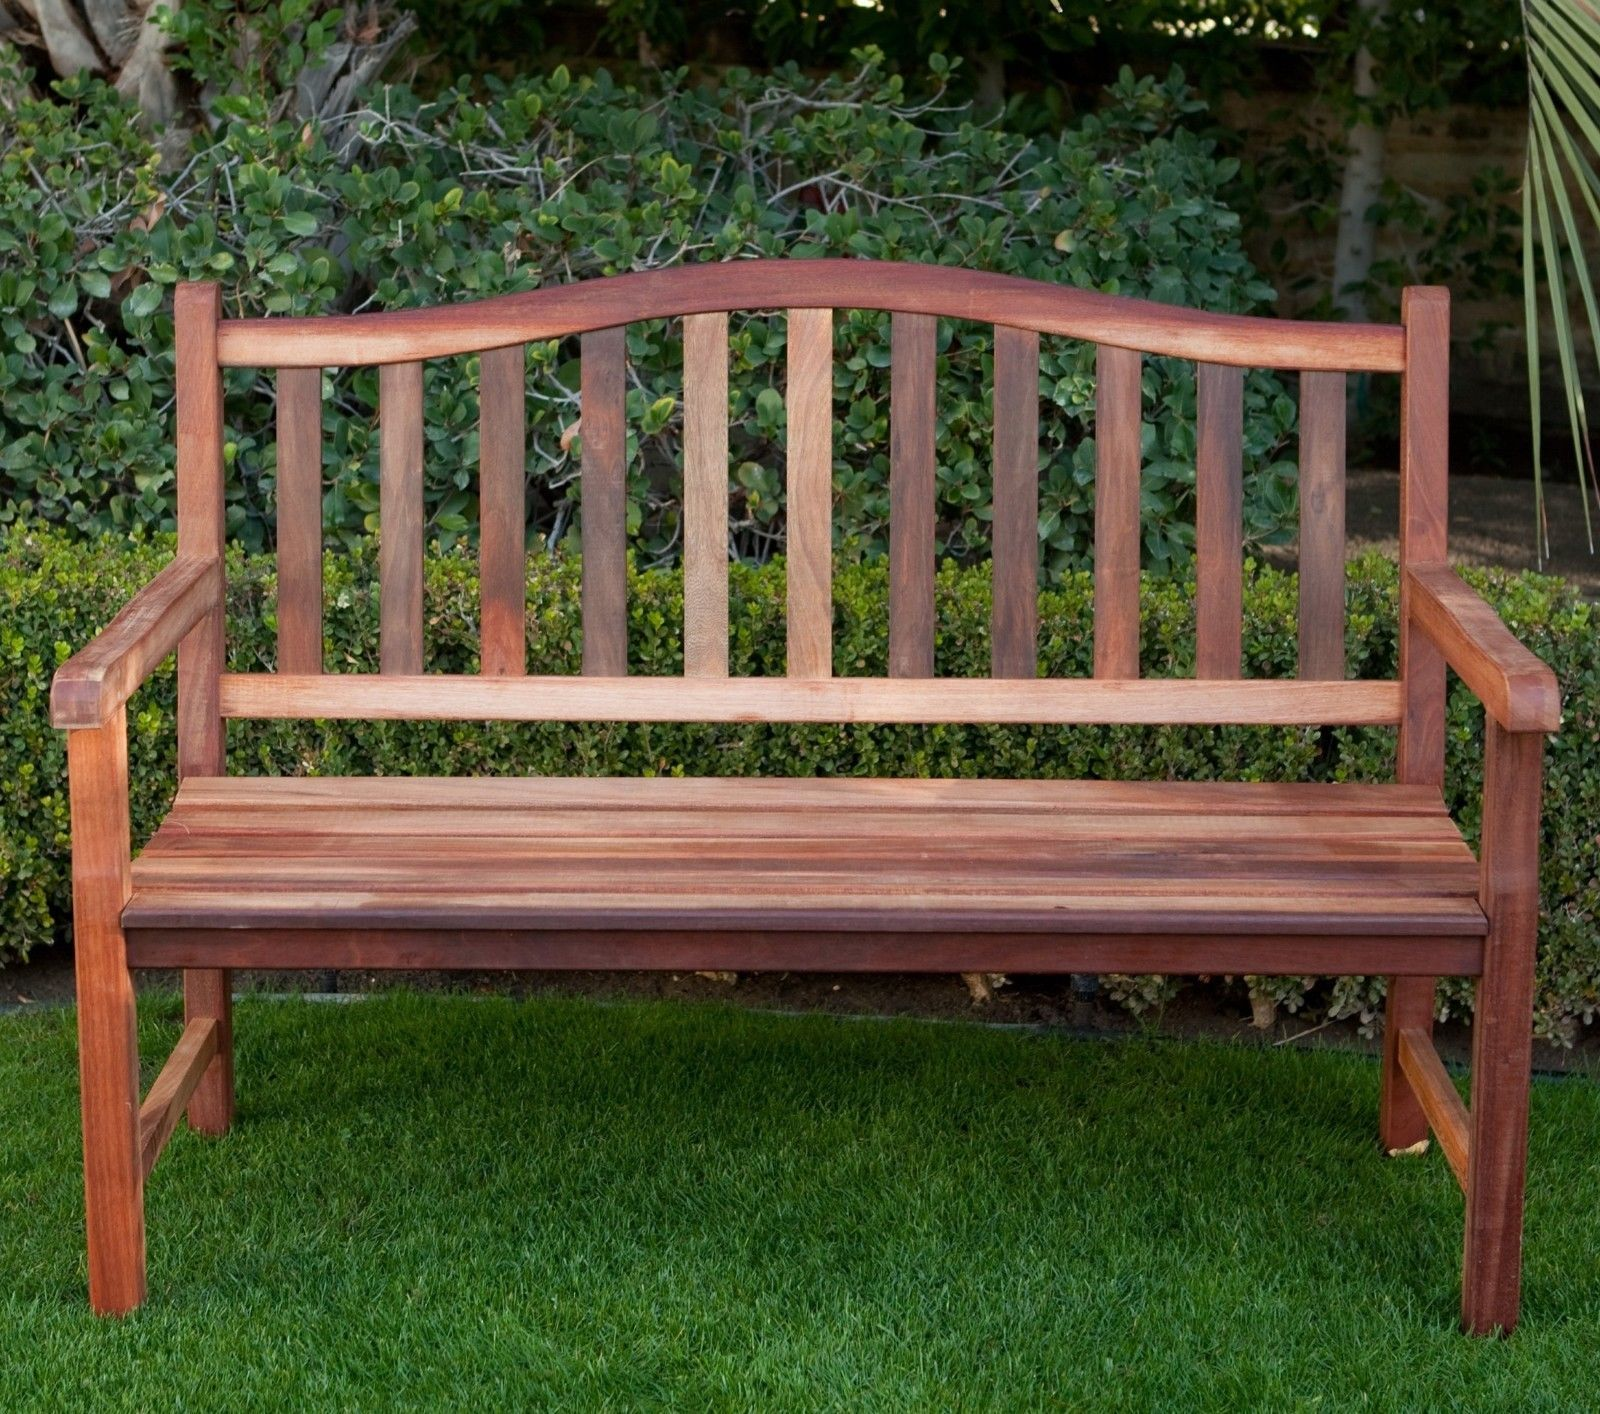 Wonderful image of  Glider Bench Patio Garden Outdoor Deck Curved Back Wooden Benches with #975434 color and 1600x1414 pixels